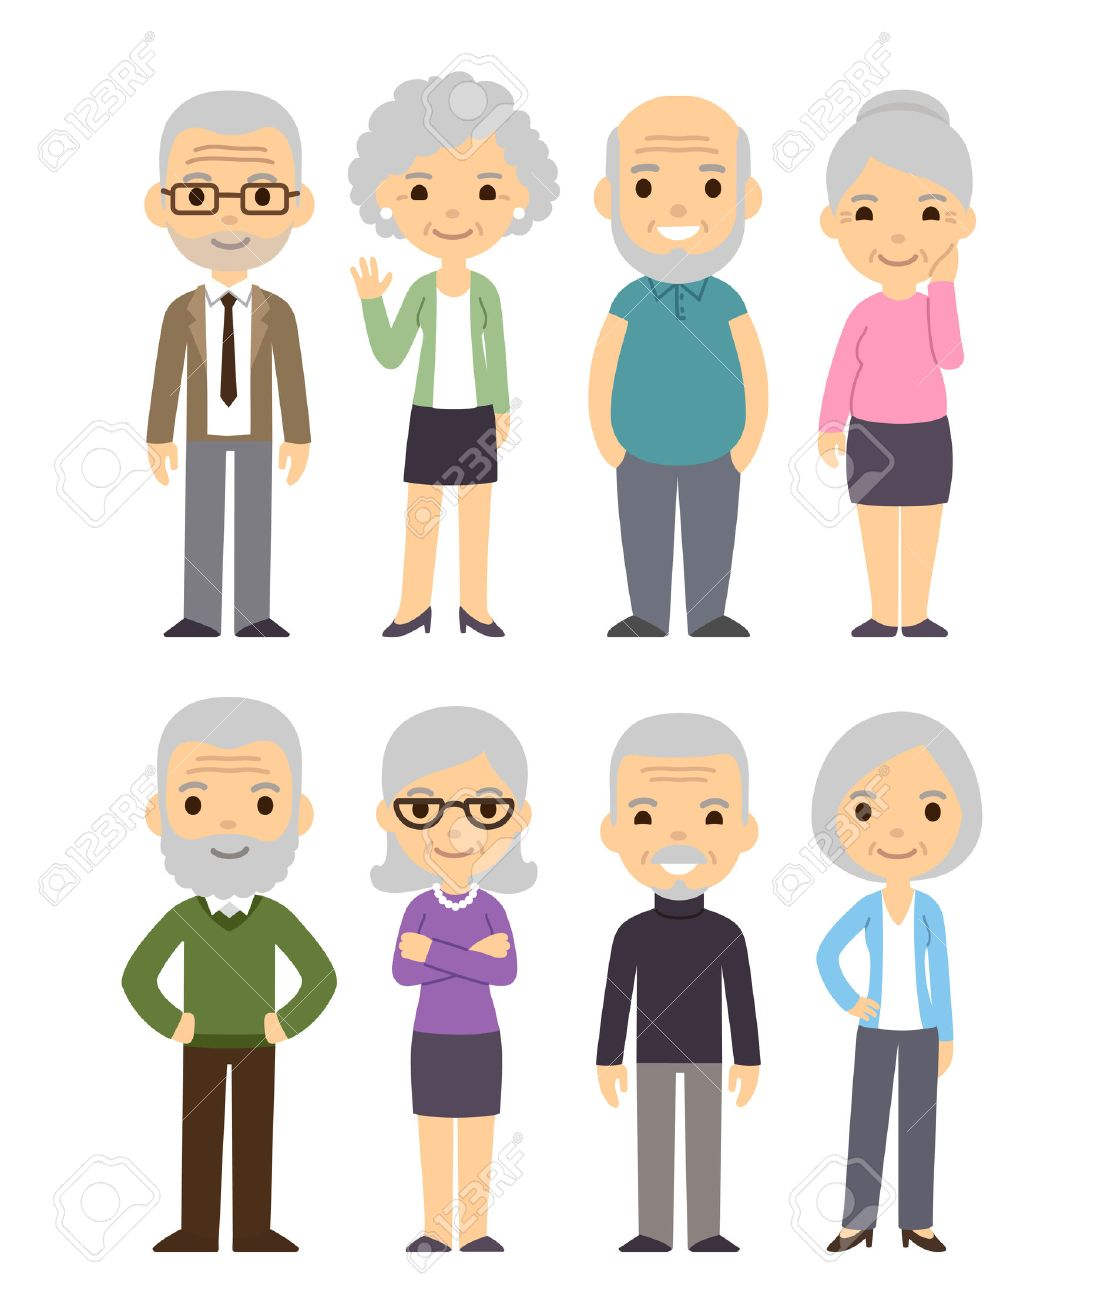 Image of: Imgur Cute Cartoon Senior People Set Happy Old People Men And Women Isolated Flat 123rfcom Cute Cartoon Senior People Set Happy Old People Men And Women